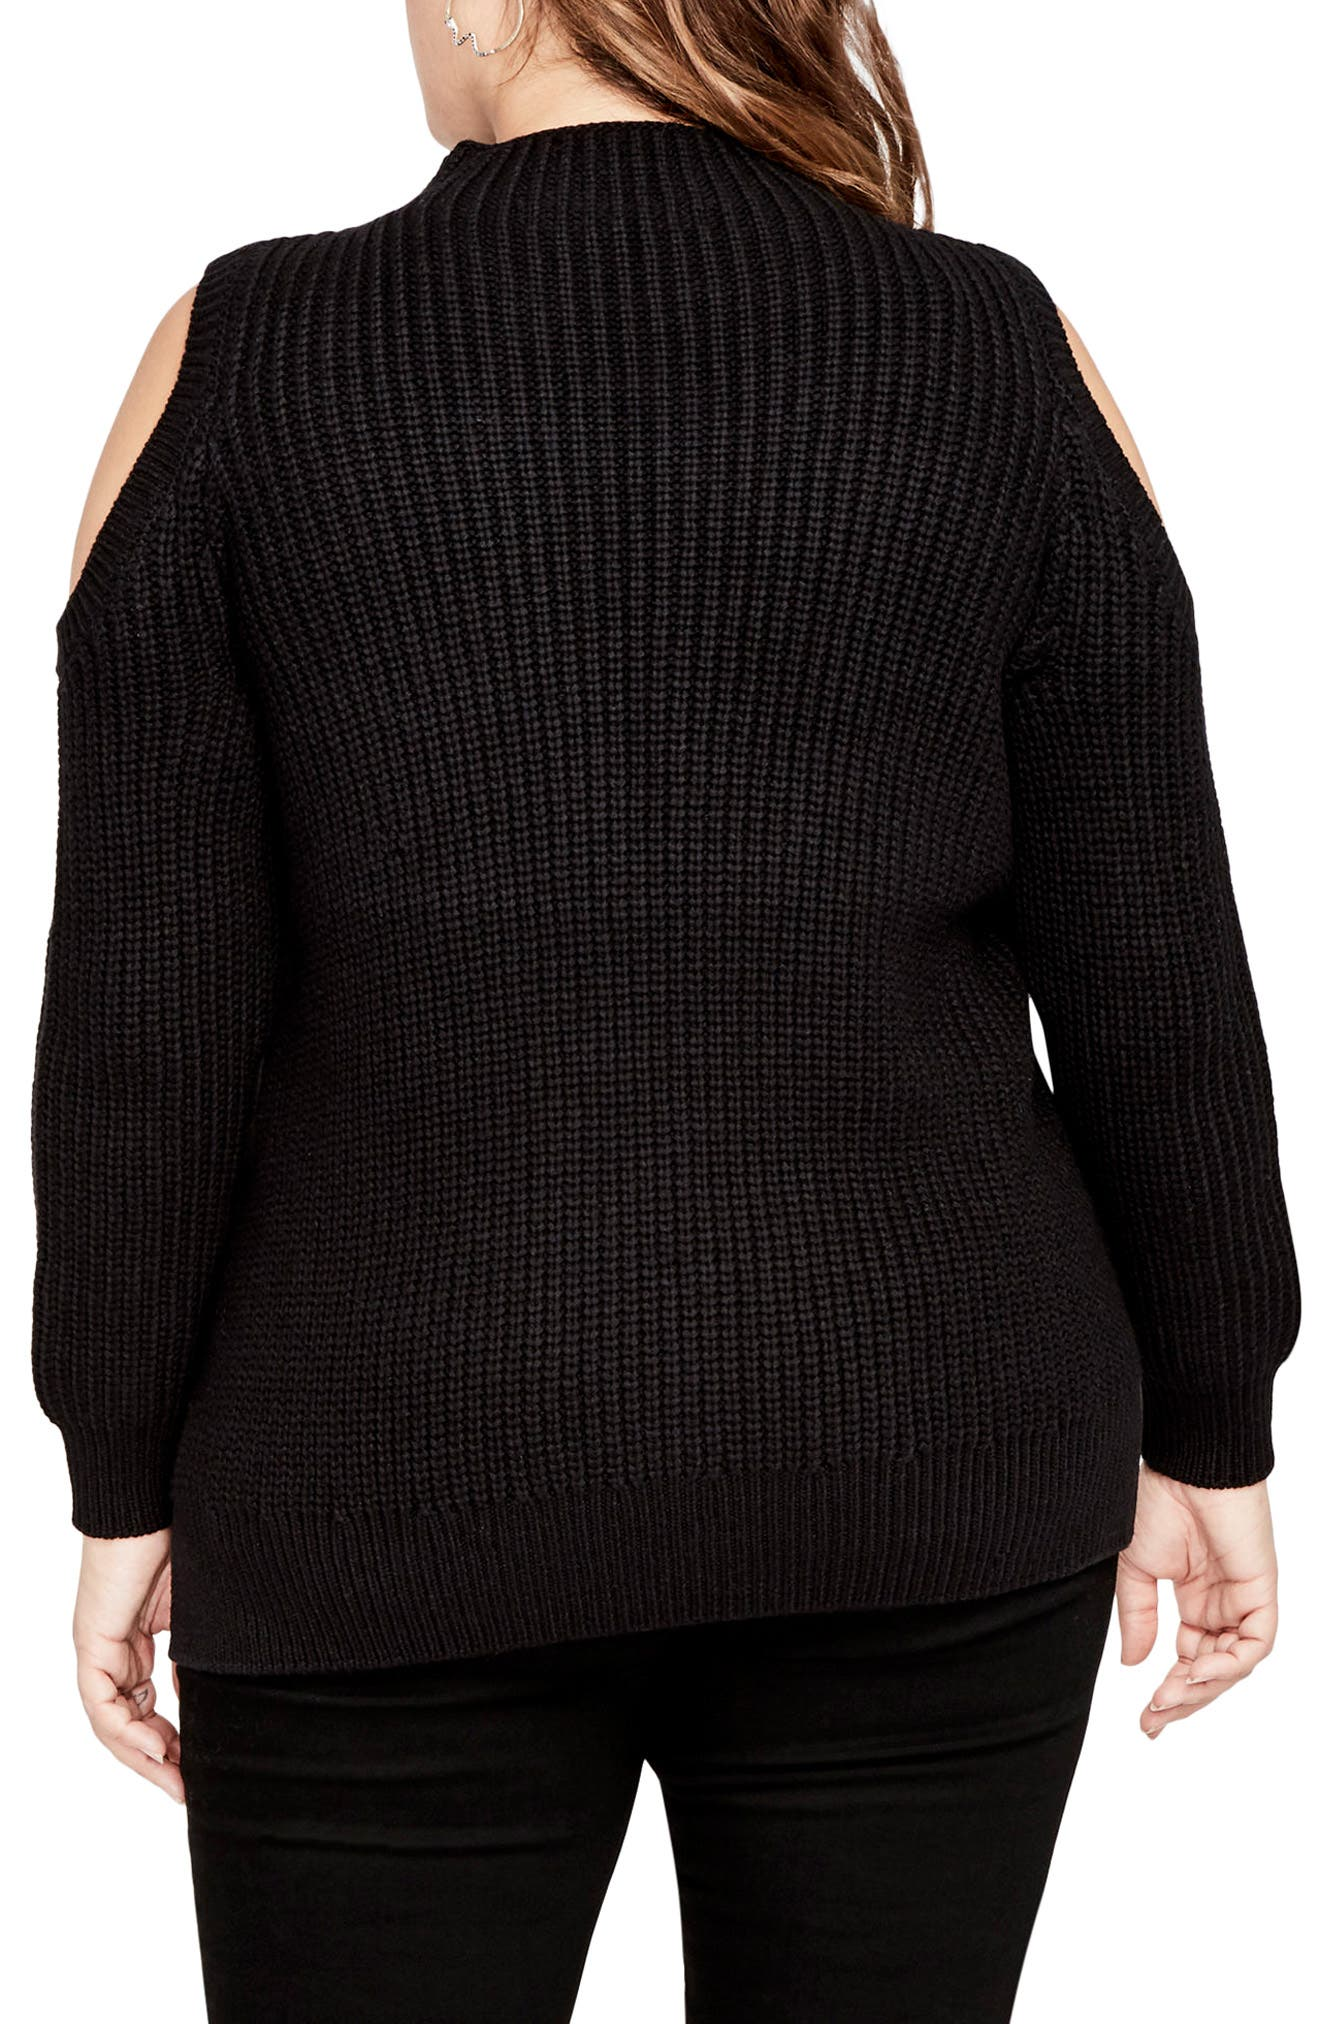 Alternate Image 2  - RACHEL Rachel Roy Cold Shoulder Cable Sweater (Plus Size)